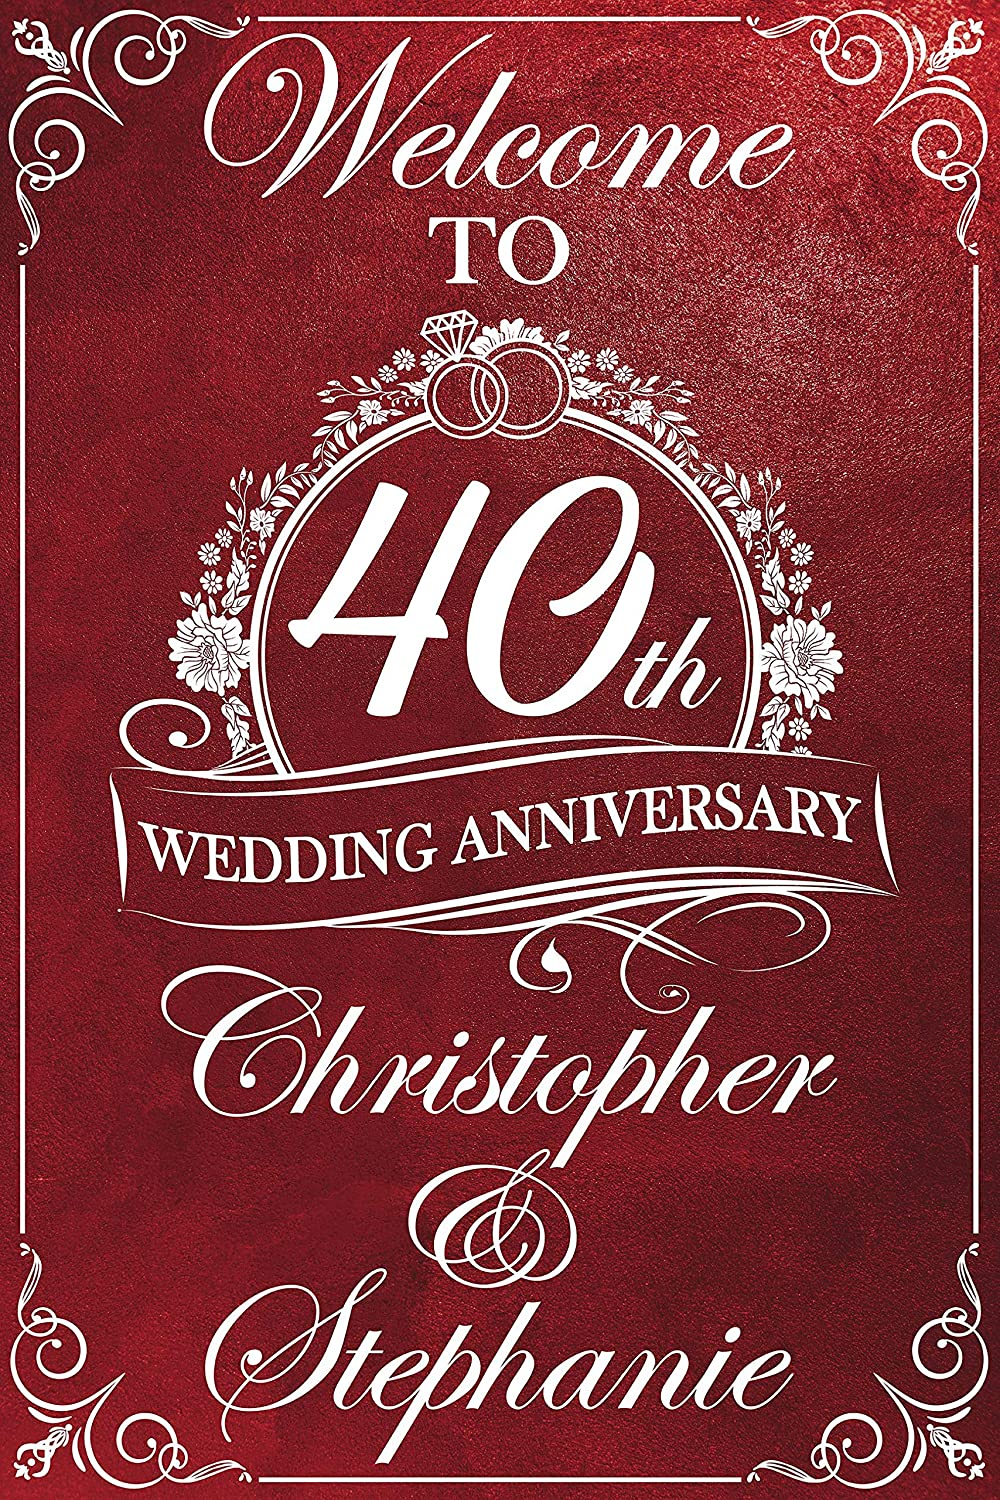 40th Wedding Anniversary Sign, 40th Anniversary Gift for Parents, Personalized 40th Anniversary Gift Size 36x24, 40th Anniversary Banner, Anniversary Party ...